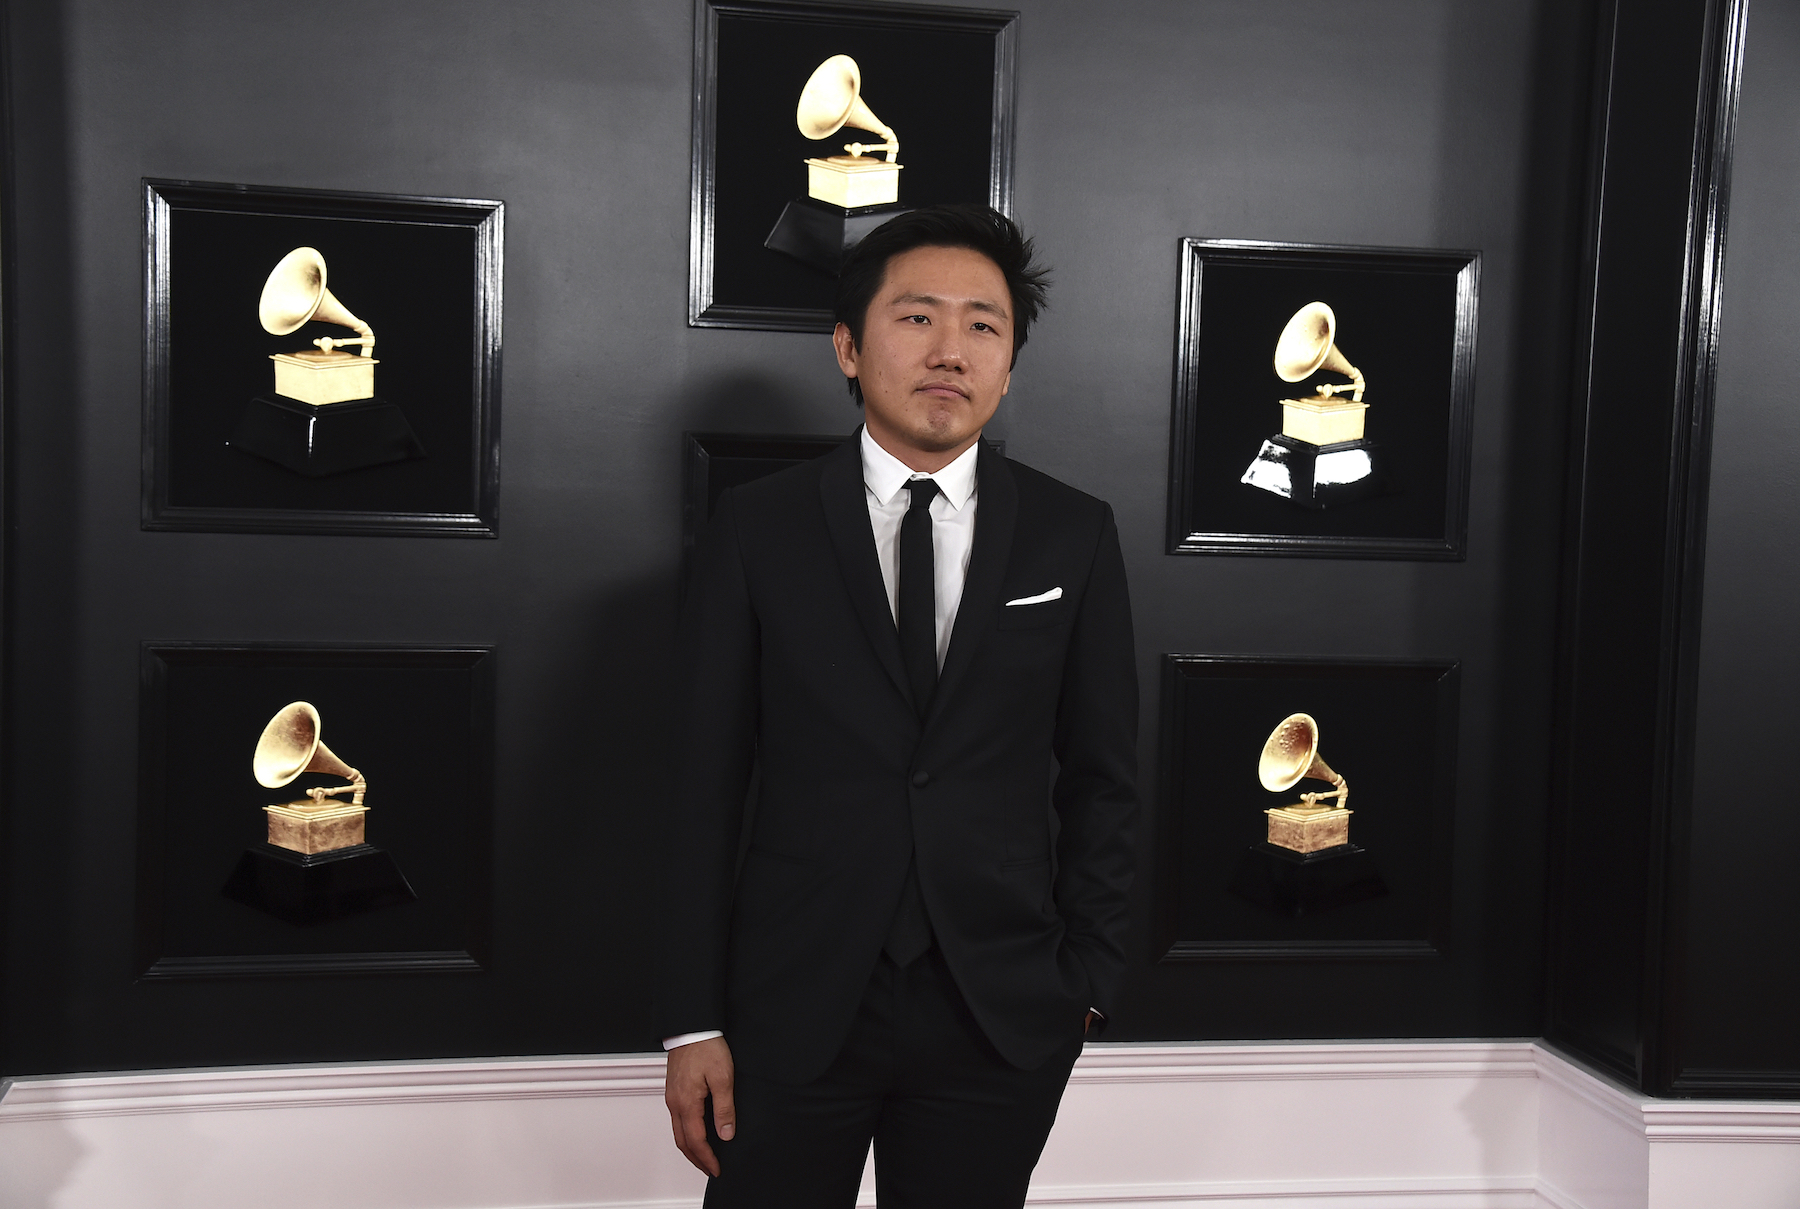 <div class='meta'><div class='origin-logo' data-origin='AP'></div><span class='caption-text' data-credit='Jordan Strauss/Invision/AP'>Hiro Murai arrives at the 61st annual Grammy Awards at the Staples Center on Sunday, Feb. 10, 2019, in Los Angeles.</span></div>